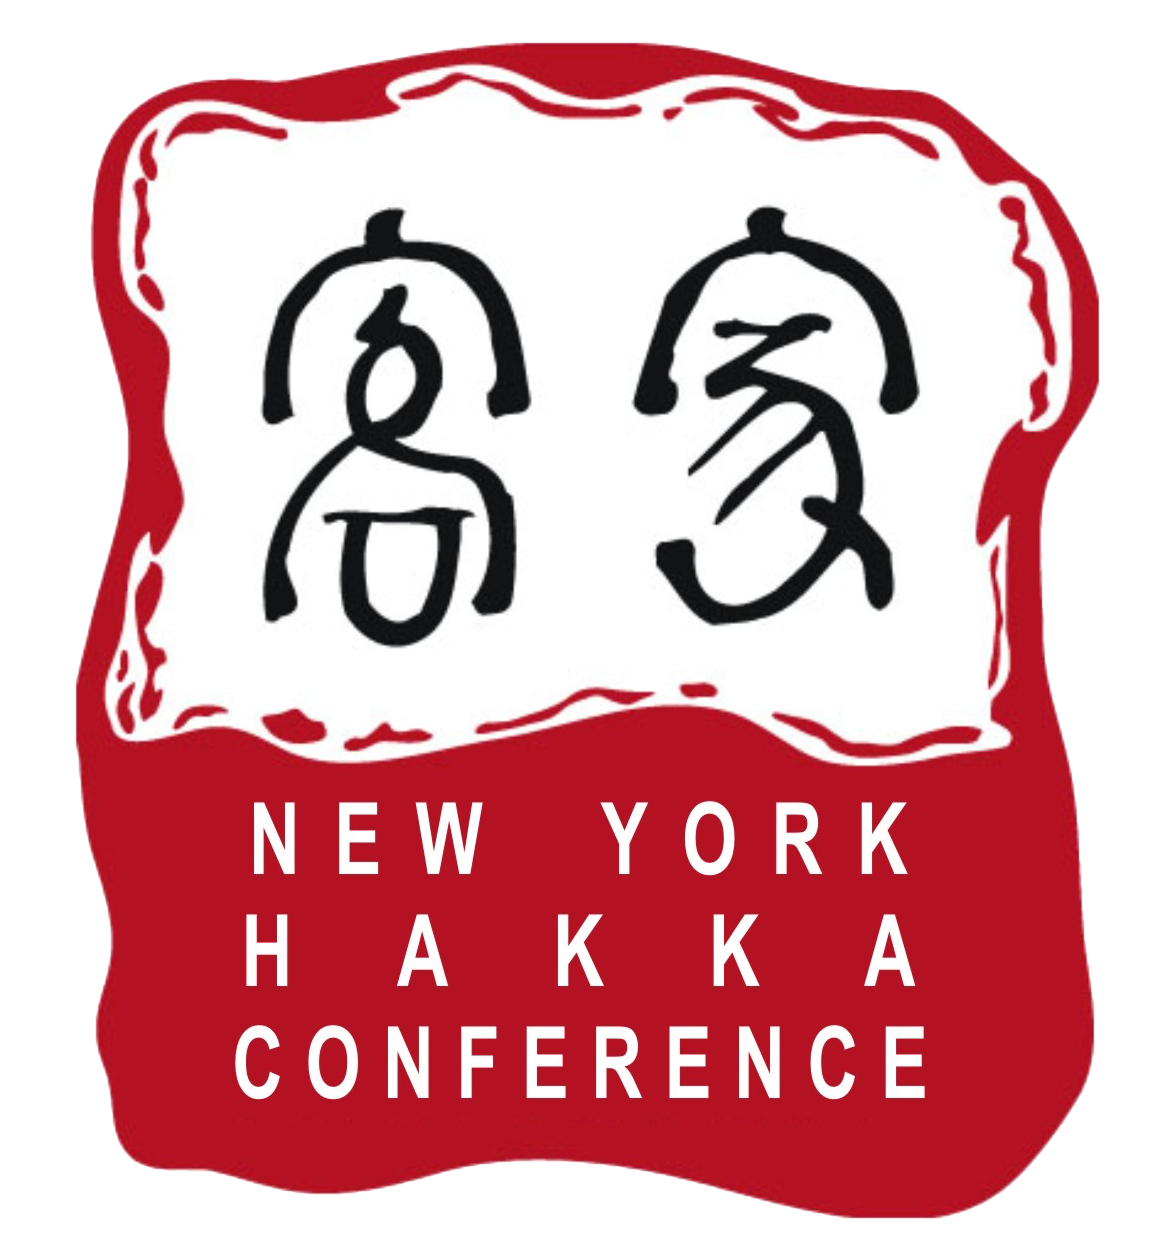 New York Hakka Conference 2019